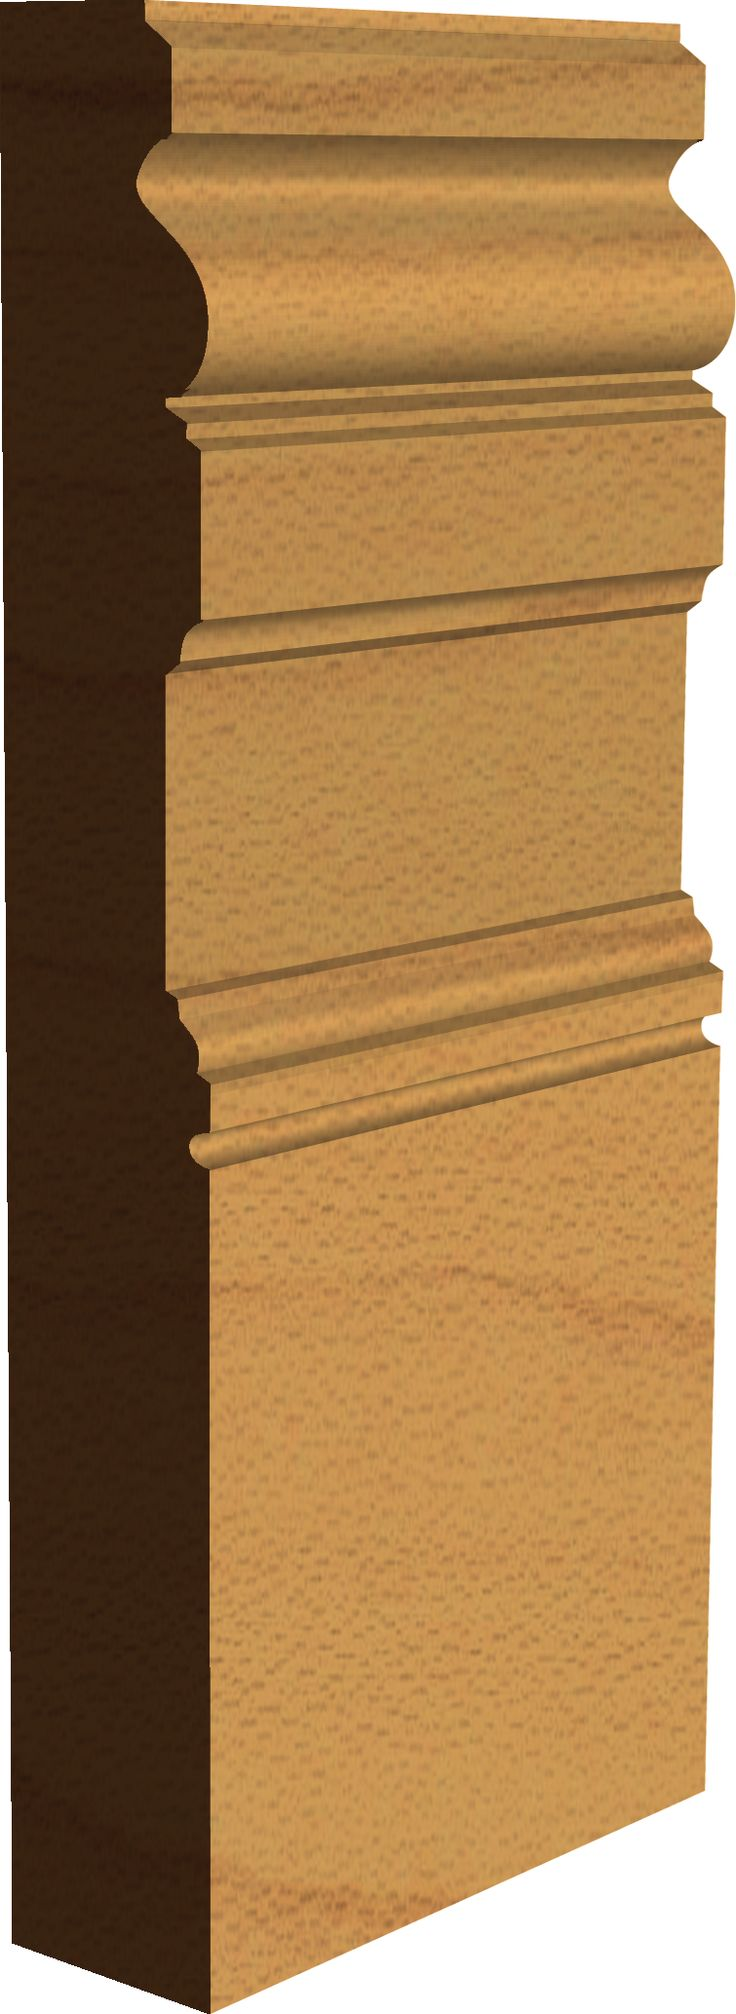 "Edwardian Interior Architectural Skirting Board - ""Grosmont""  Made by Period Mouldings - www.periodmouldings.co.uk"